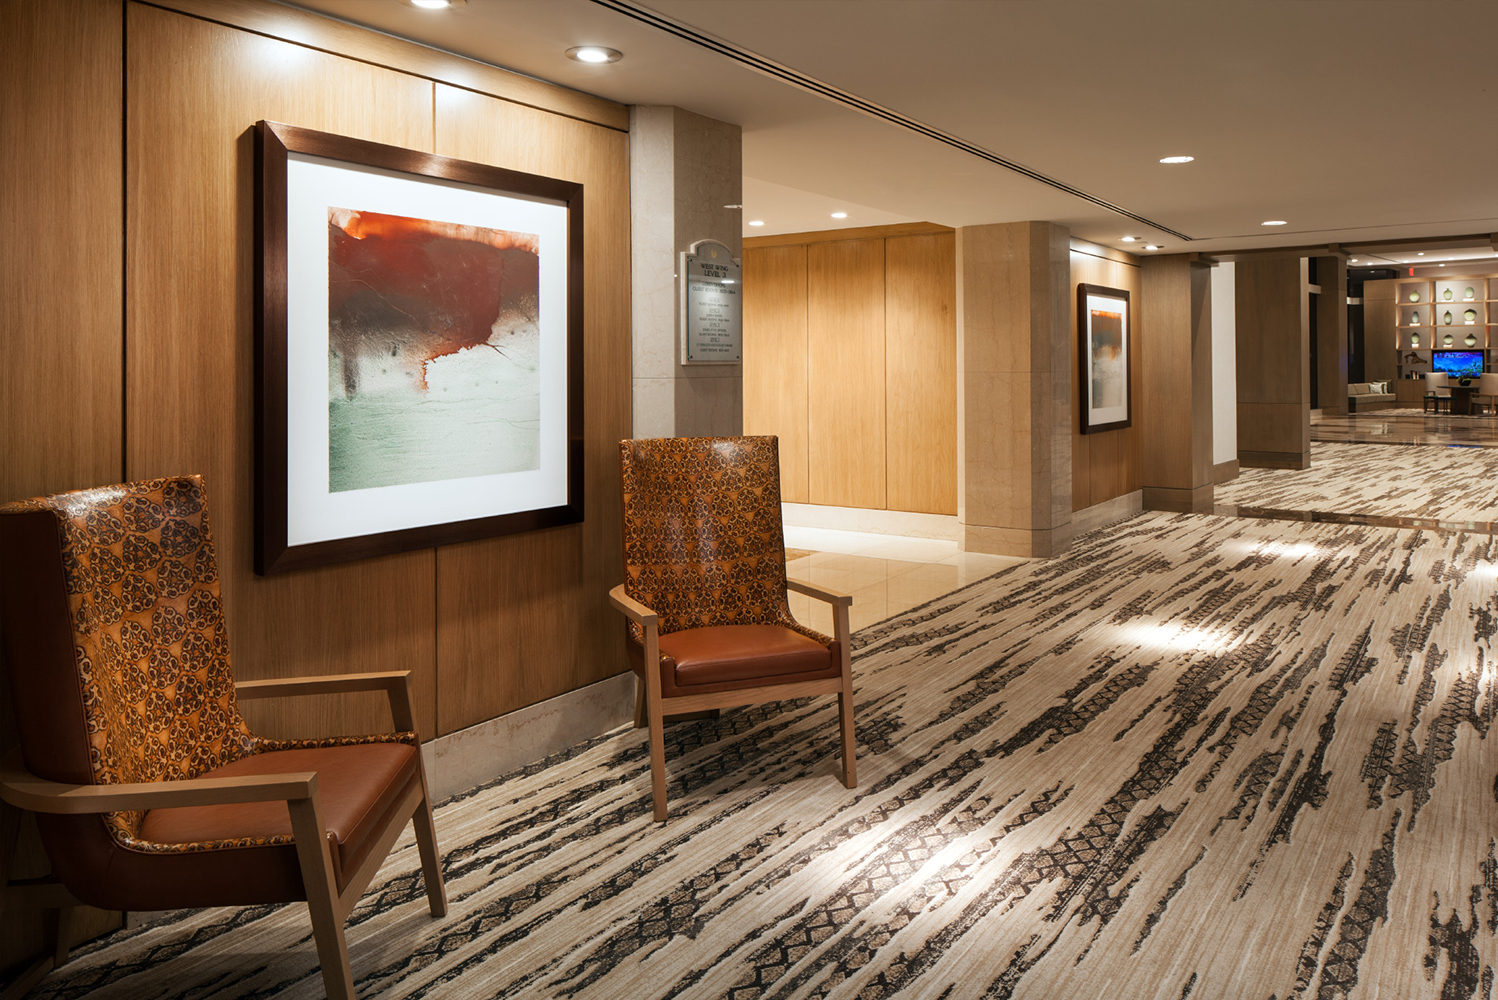 The artwork in the main lobby is inspired by the relationship of day and night in the Sonoran Desert, and the transitional times between the two periods.